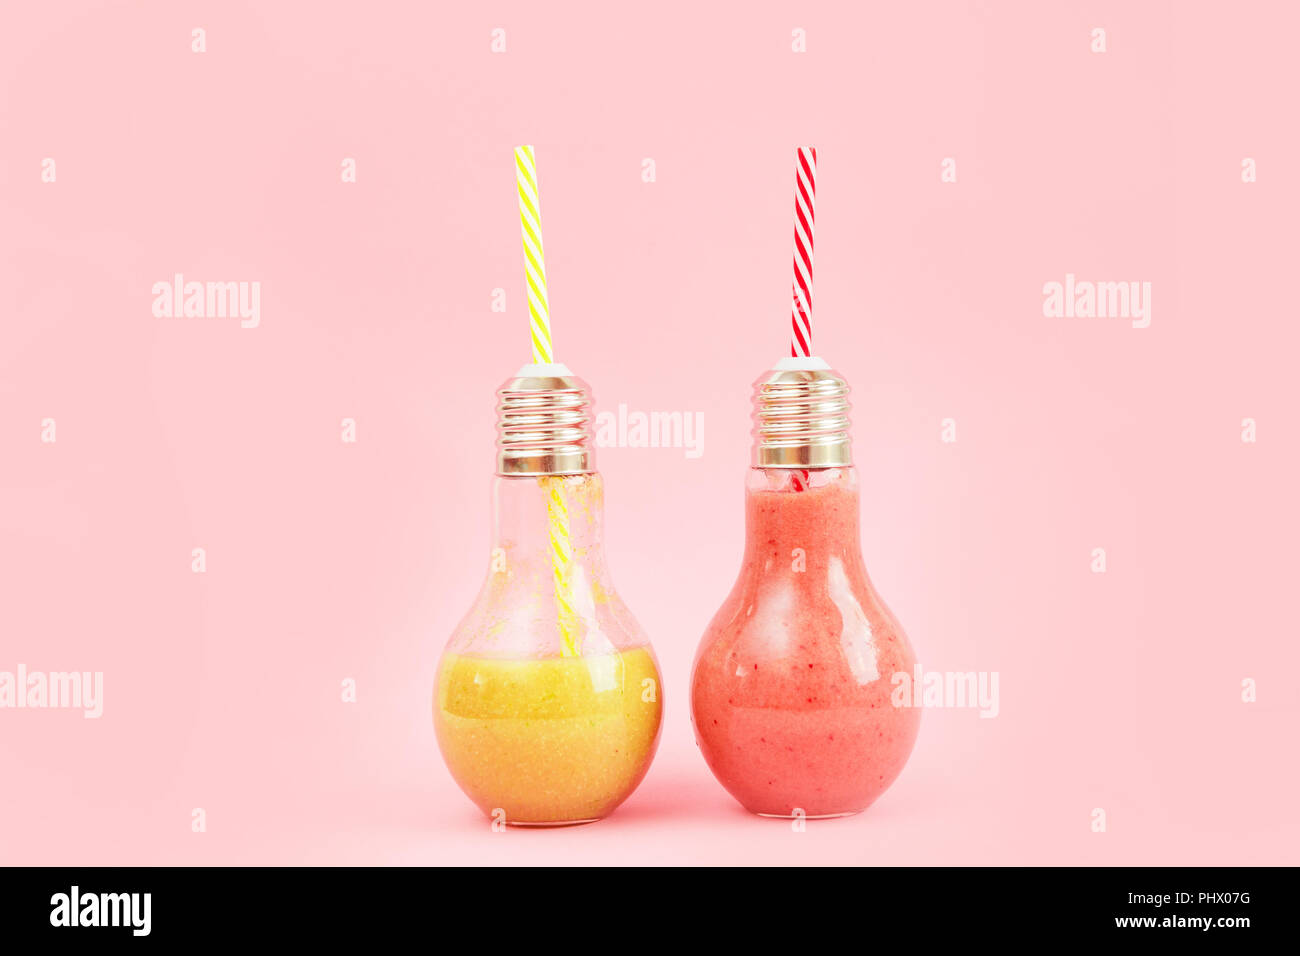 Two lamp- shaped jars with fruit smoothies isolated on pink background. Stock Photo